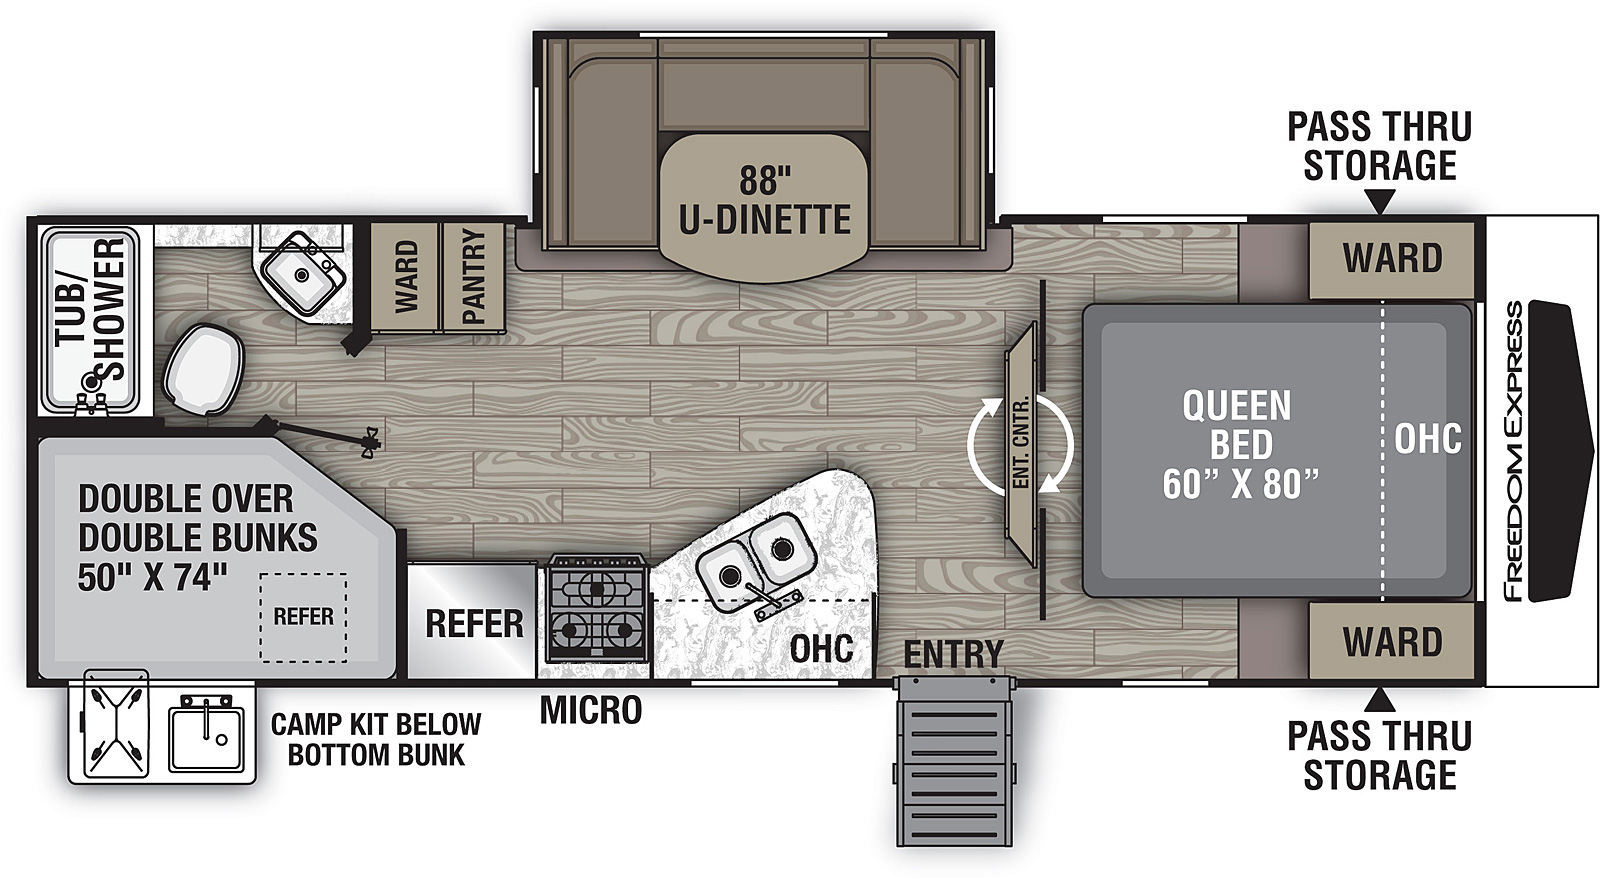 Floorplan for Freedom Express Ultra Lite Travel Trailers model 257 BHS